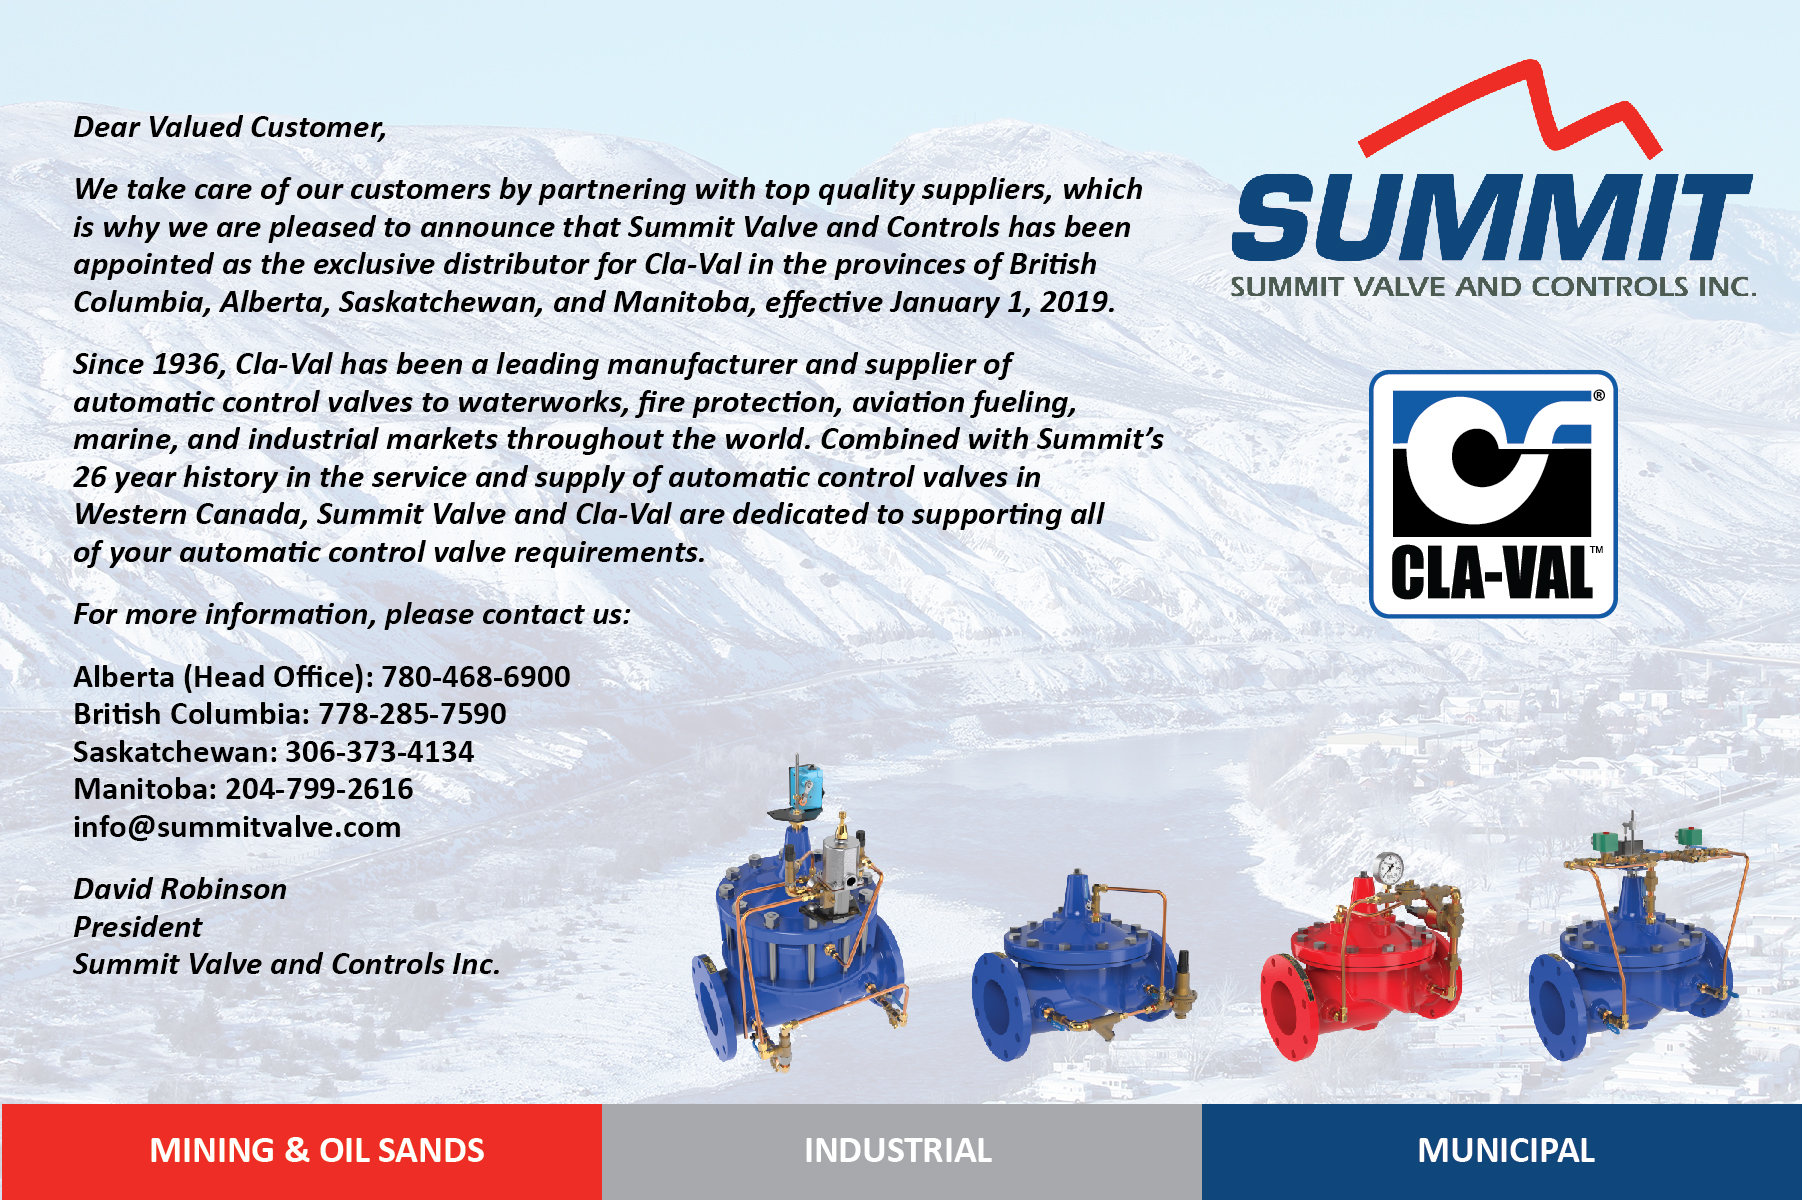 Summit-Valve Cla-Val Exclusive Distributor